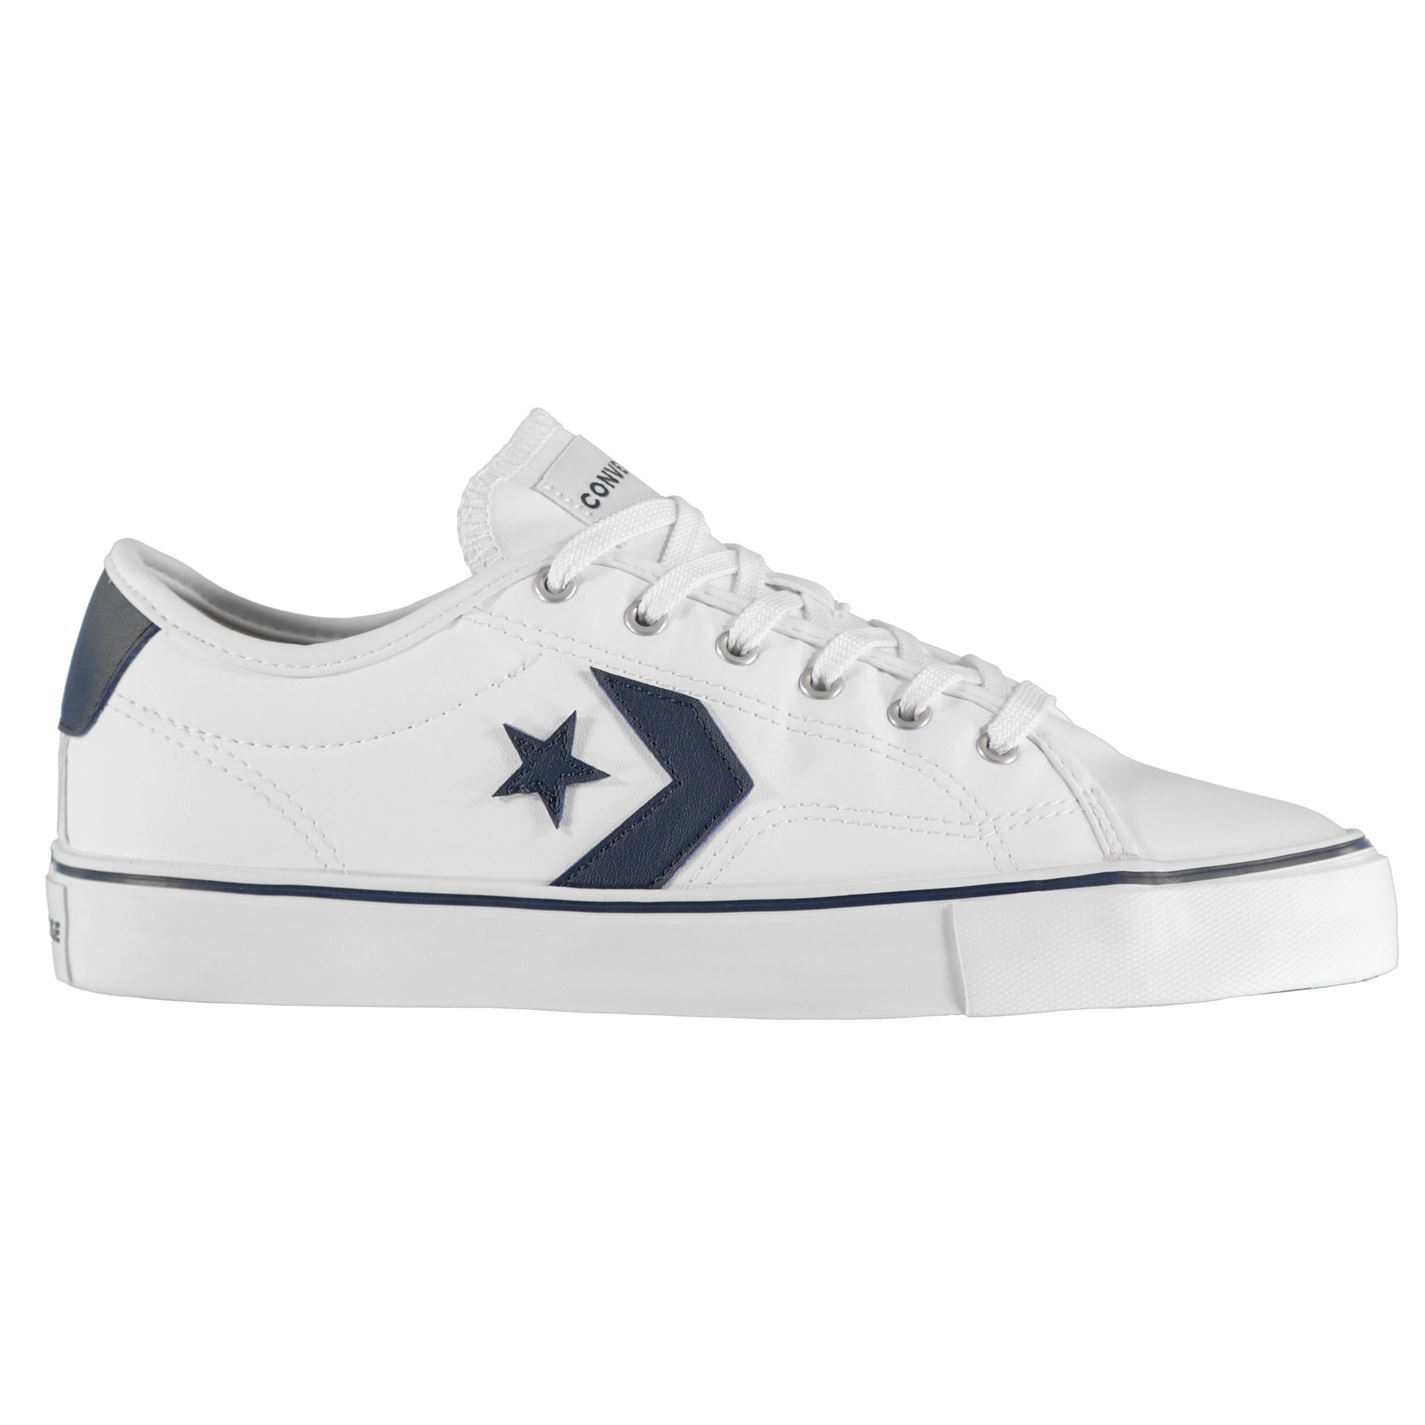 Converse-Ox-Replay-Low-Baskets-Pour-Homme-Chaussures-De-Loisirs-Chaussures-Baskets miniature 17